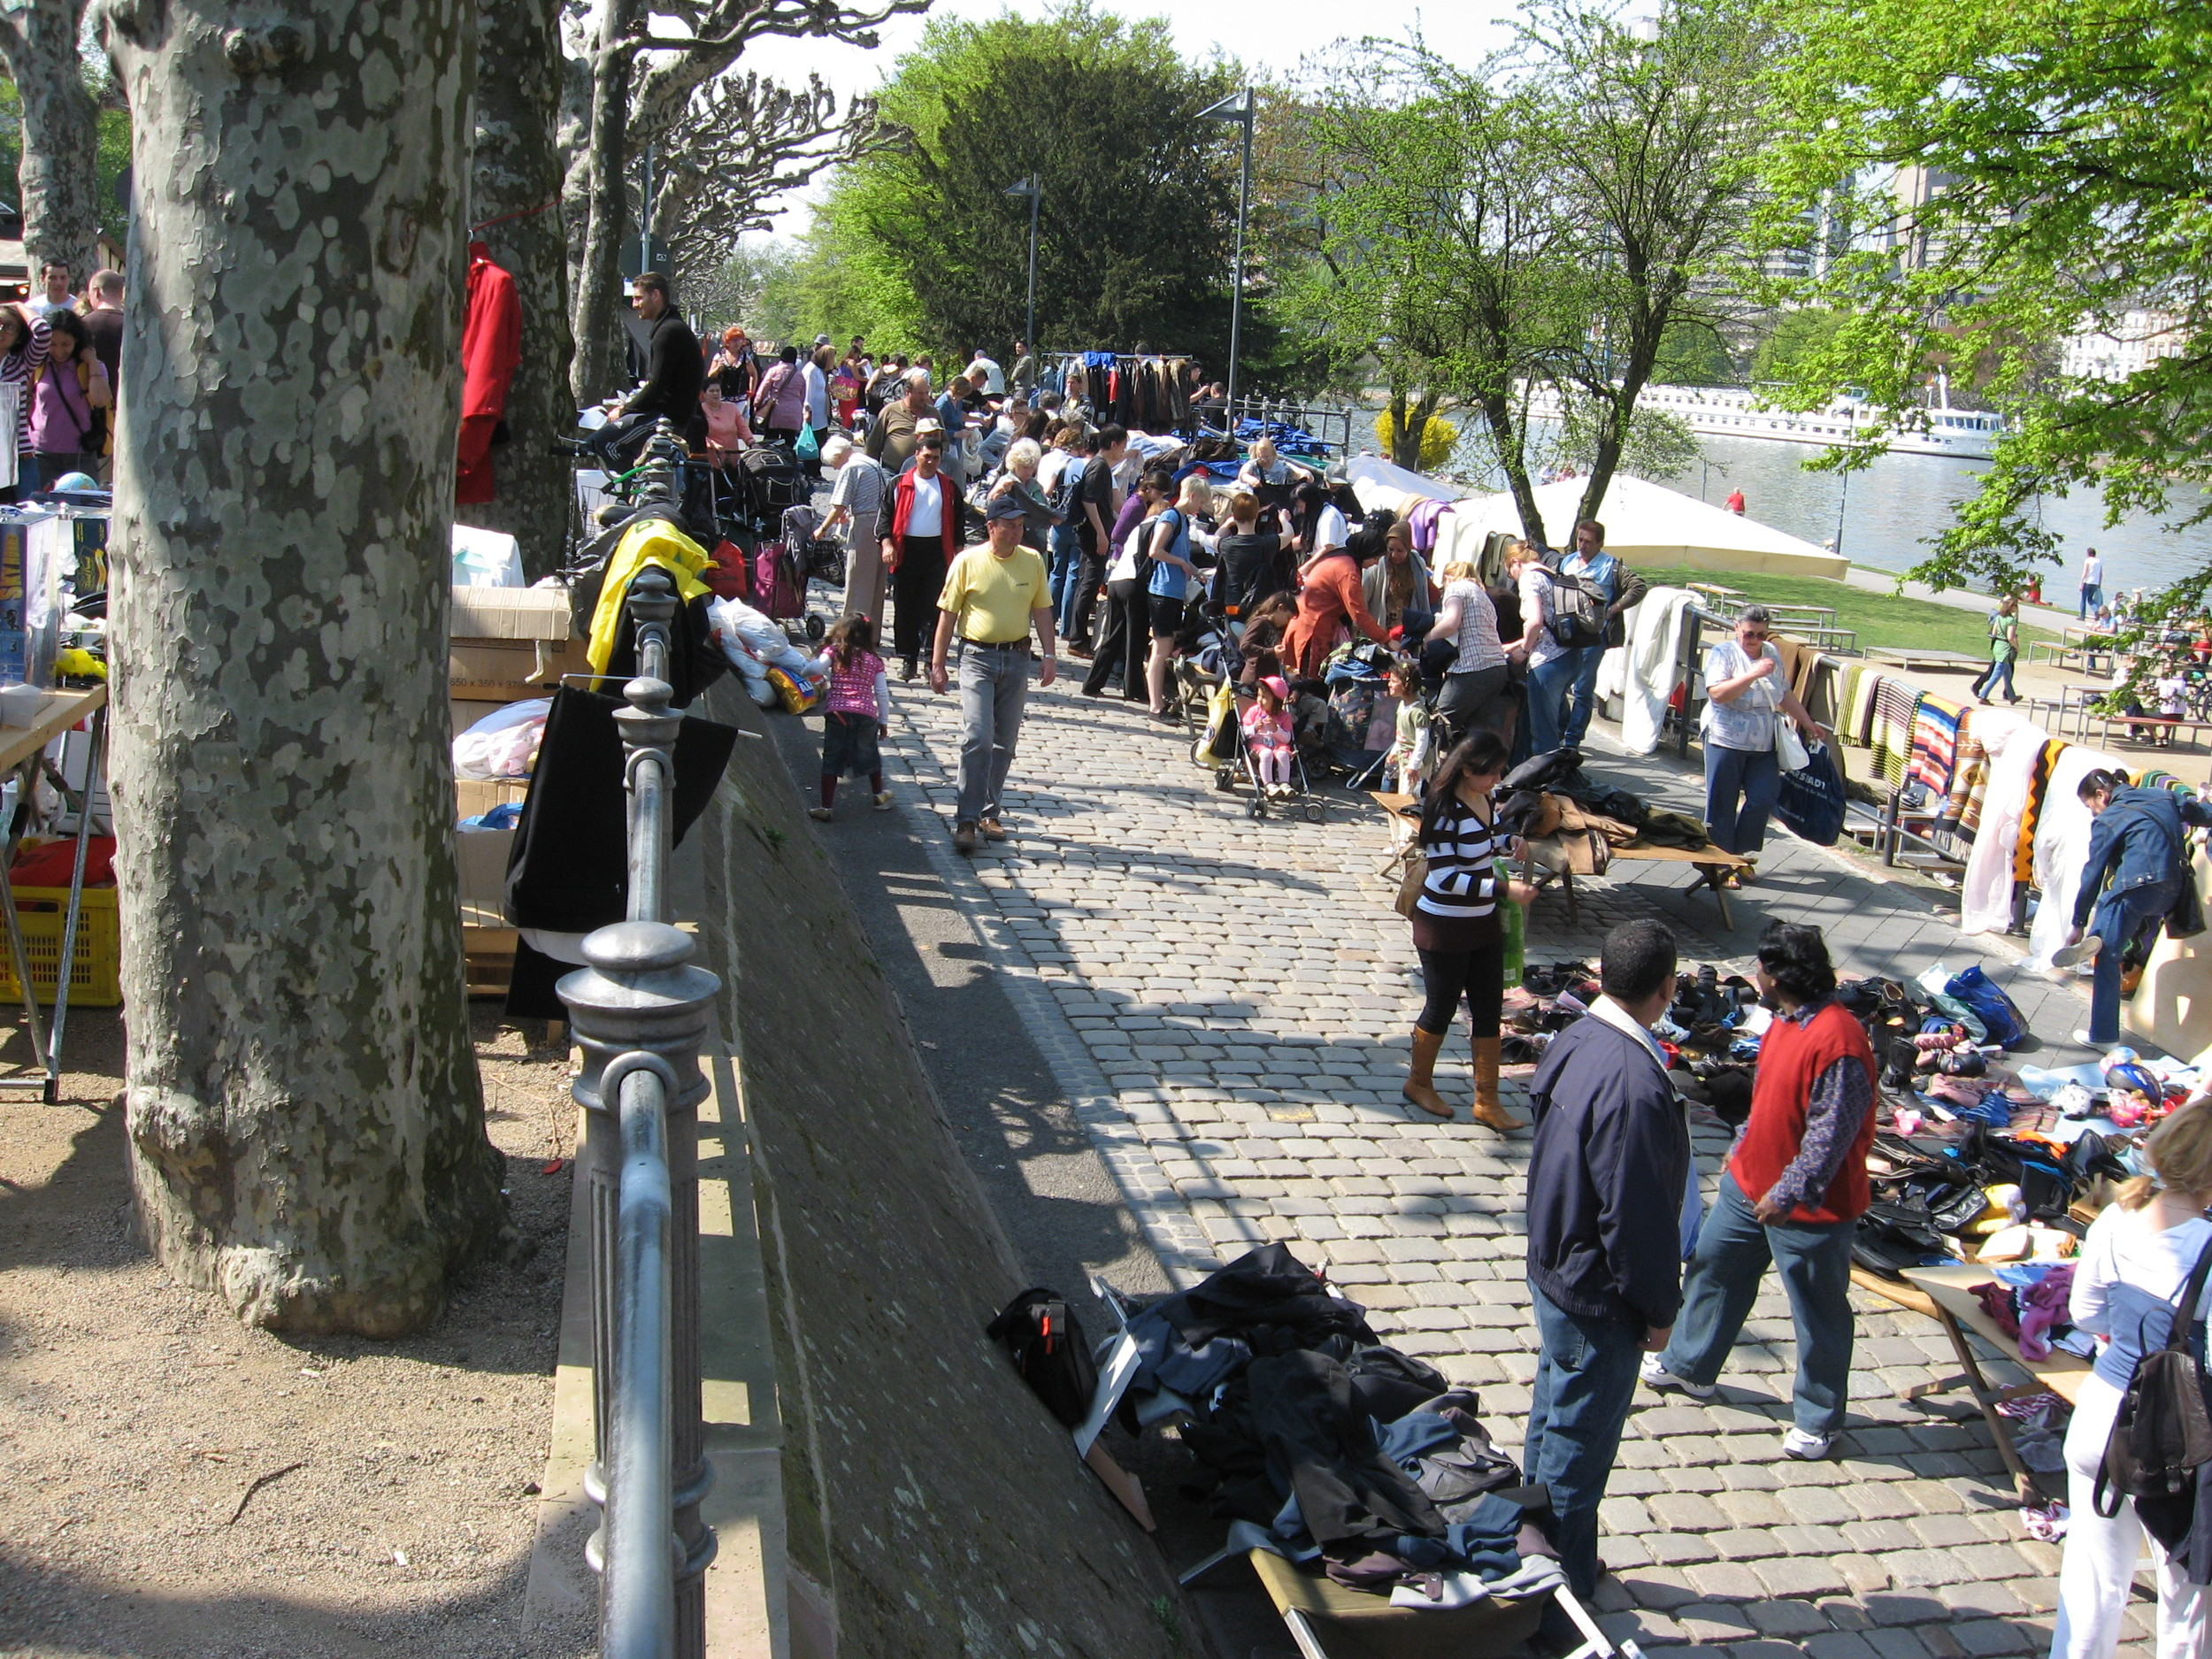 Frankfurt's Saturday flea market happens year round on a long linear plaza along the river.  It attracts thousands of people downtown.